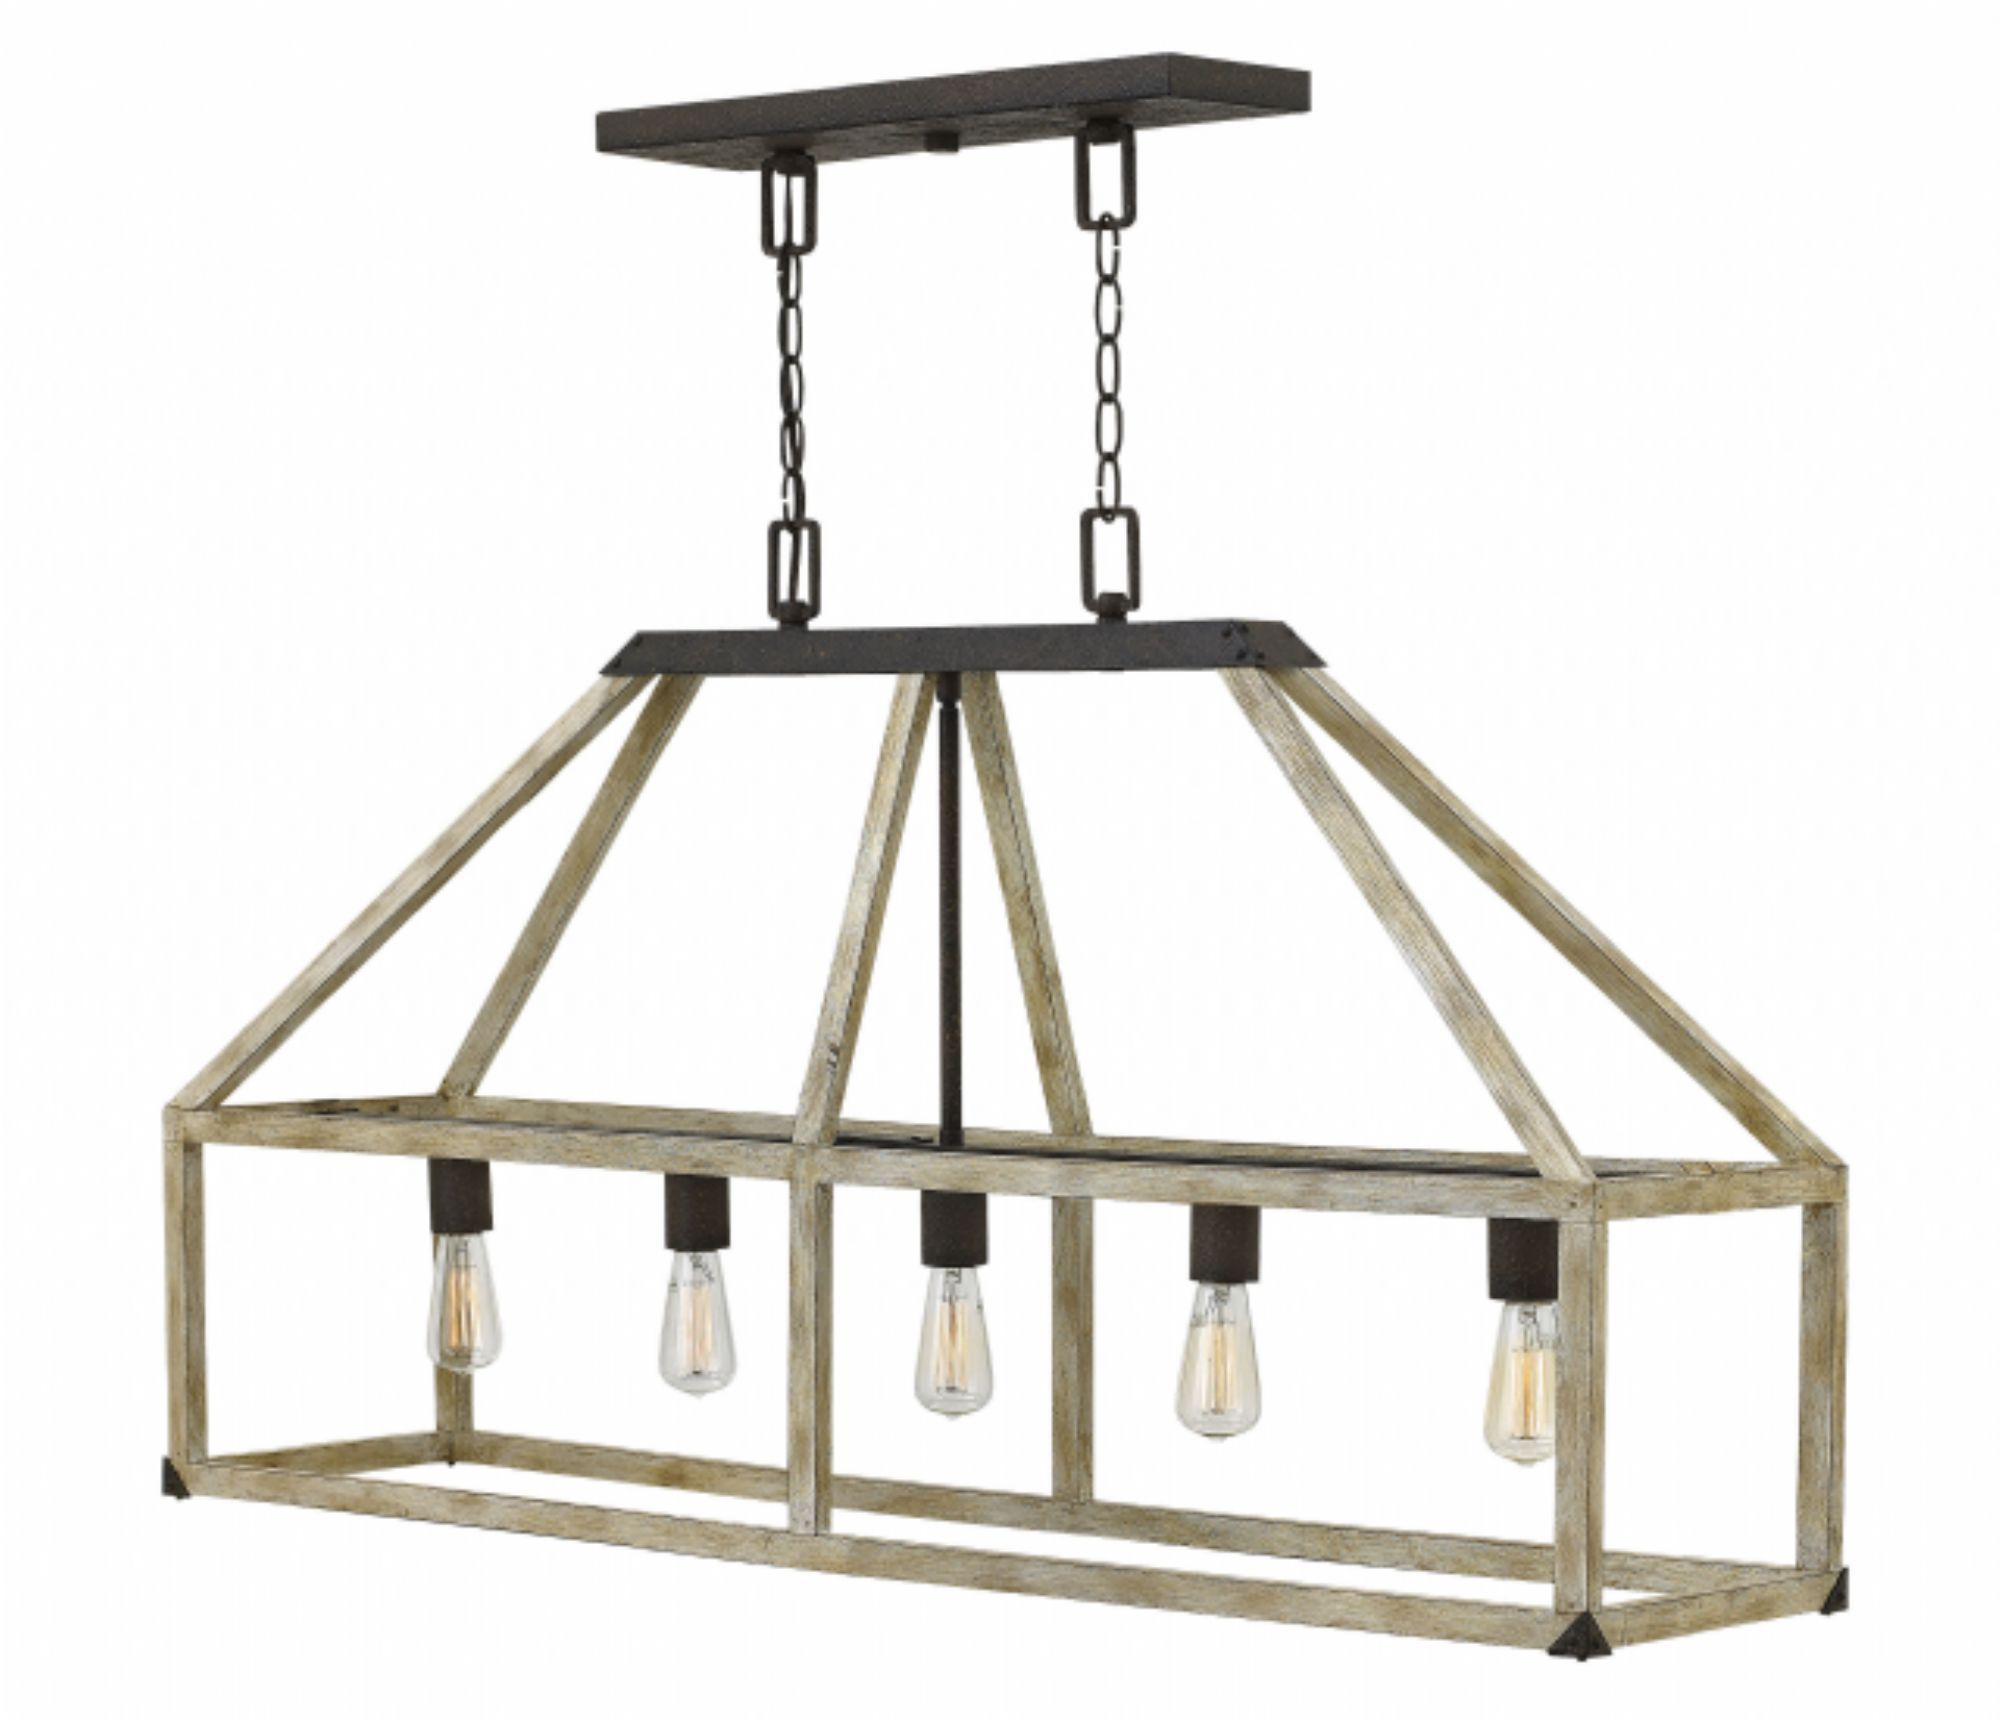 Hinkley lighting carries many iron rust emilie chandeliers light hinkley lighting carries many iron rust emilie chandeliers light fixtures that can be used to enhance aloadofball Choice Image